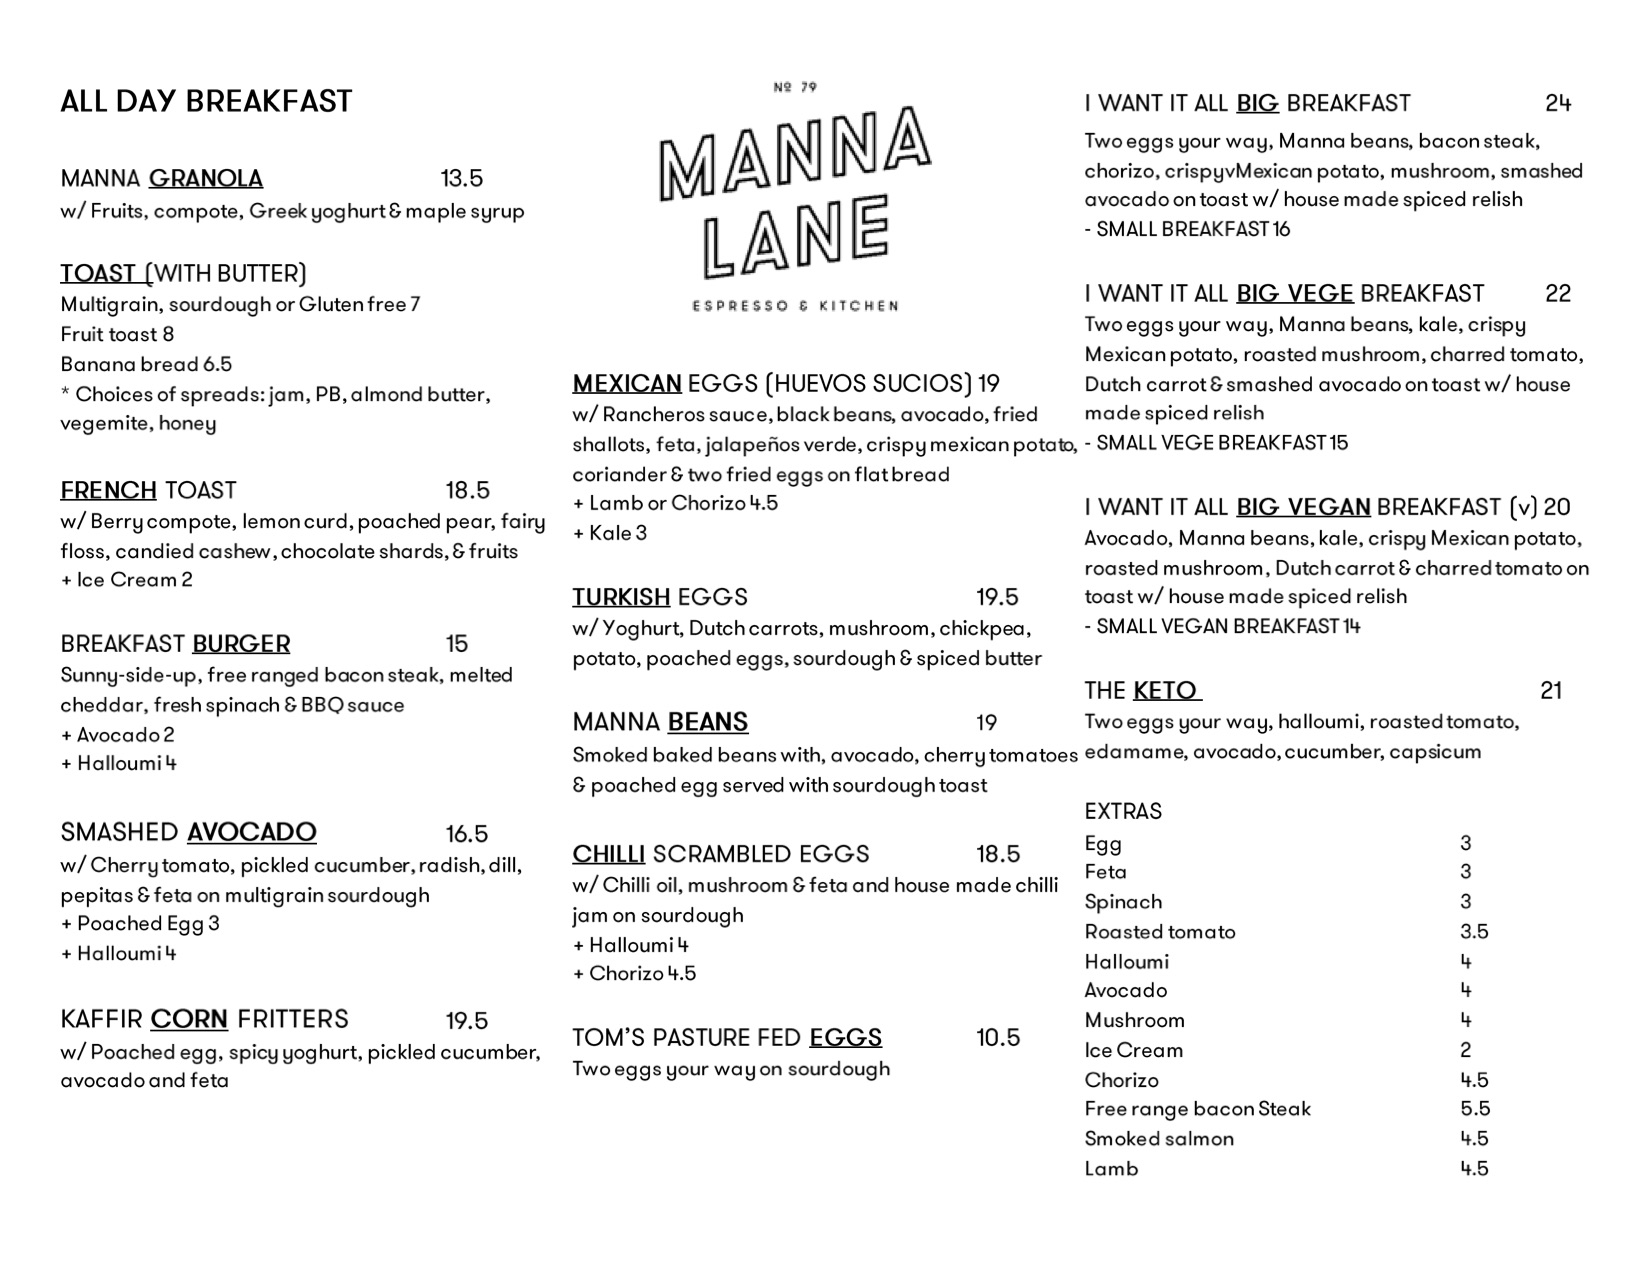 Manna Lane summer menu, 2021, front page.